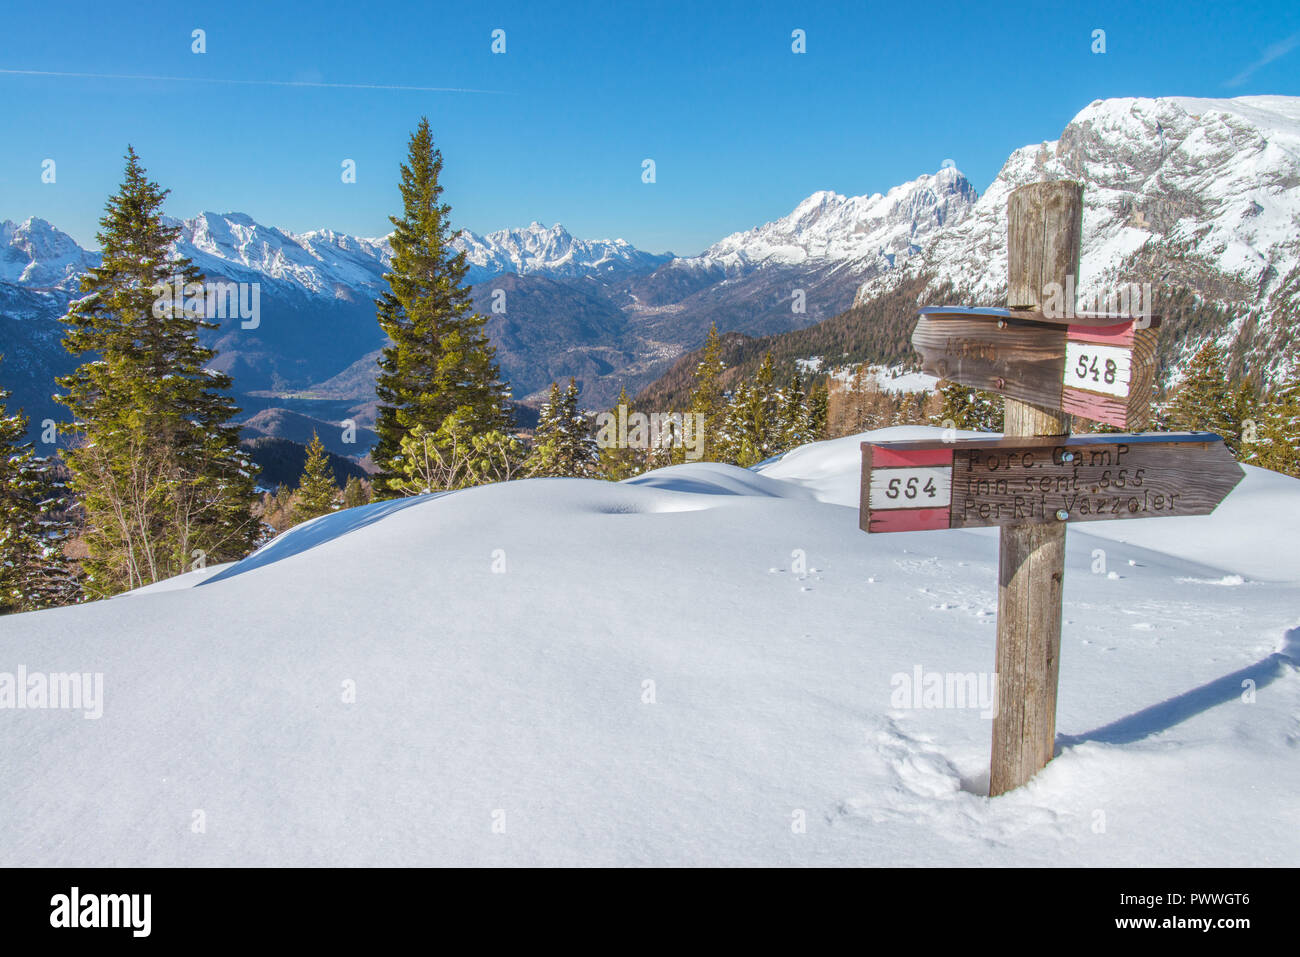 Trail marker, signpost pointing the way towards the many trails of the southern Italian Alps. Snowshoeing, tracks on the snow, cloudless day. - Stock Image